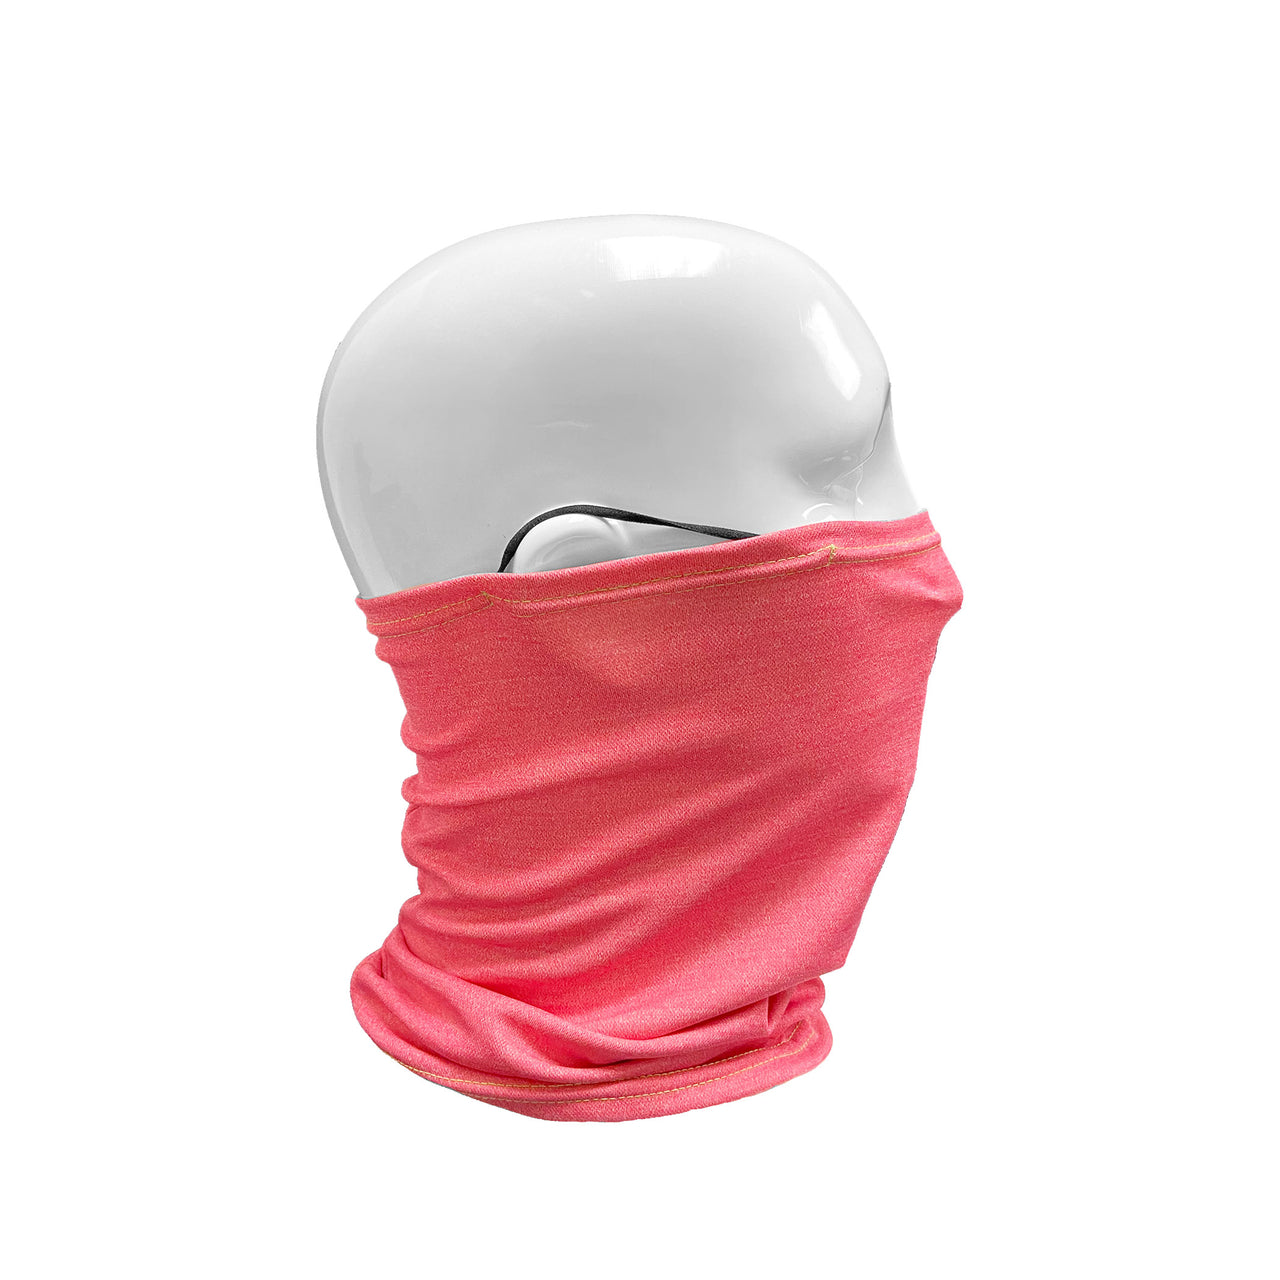 Quick Dry Cooling Unisex Gaiter Face Mask with Ear Loops | Boss Pink - CHERRYSTONE